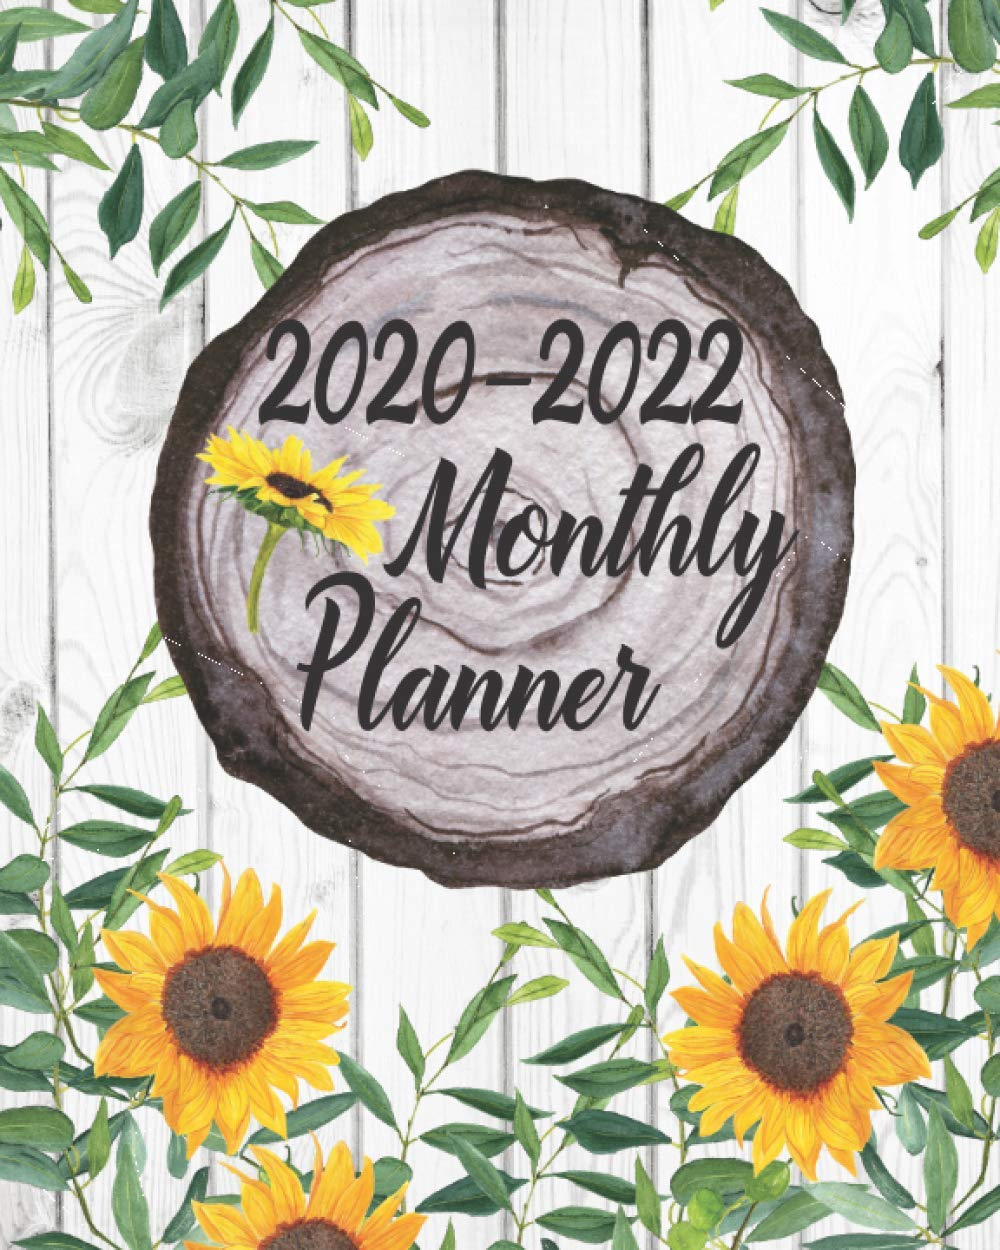 The 10 Star Toys Of Christmas 2020-2022 2020 2022 Monthly Planner: Rustic Wood Sunflower Design: Monthly